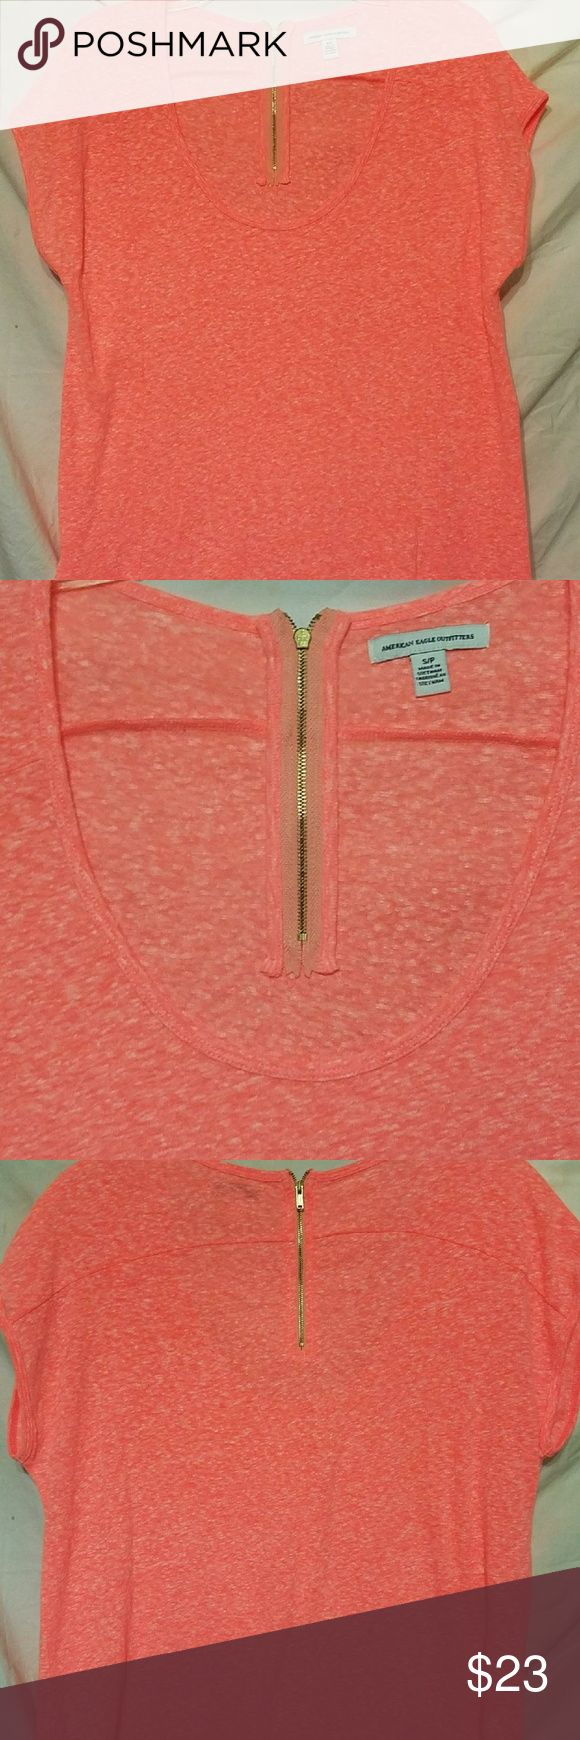 Short sleeve shirt American eagle t shirt Gold zipper in the back Great condition Little bigger than listed size. Could fit medium size American Eagle Outfitters Tops Tees - Short Sleeve